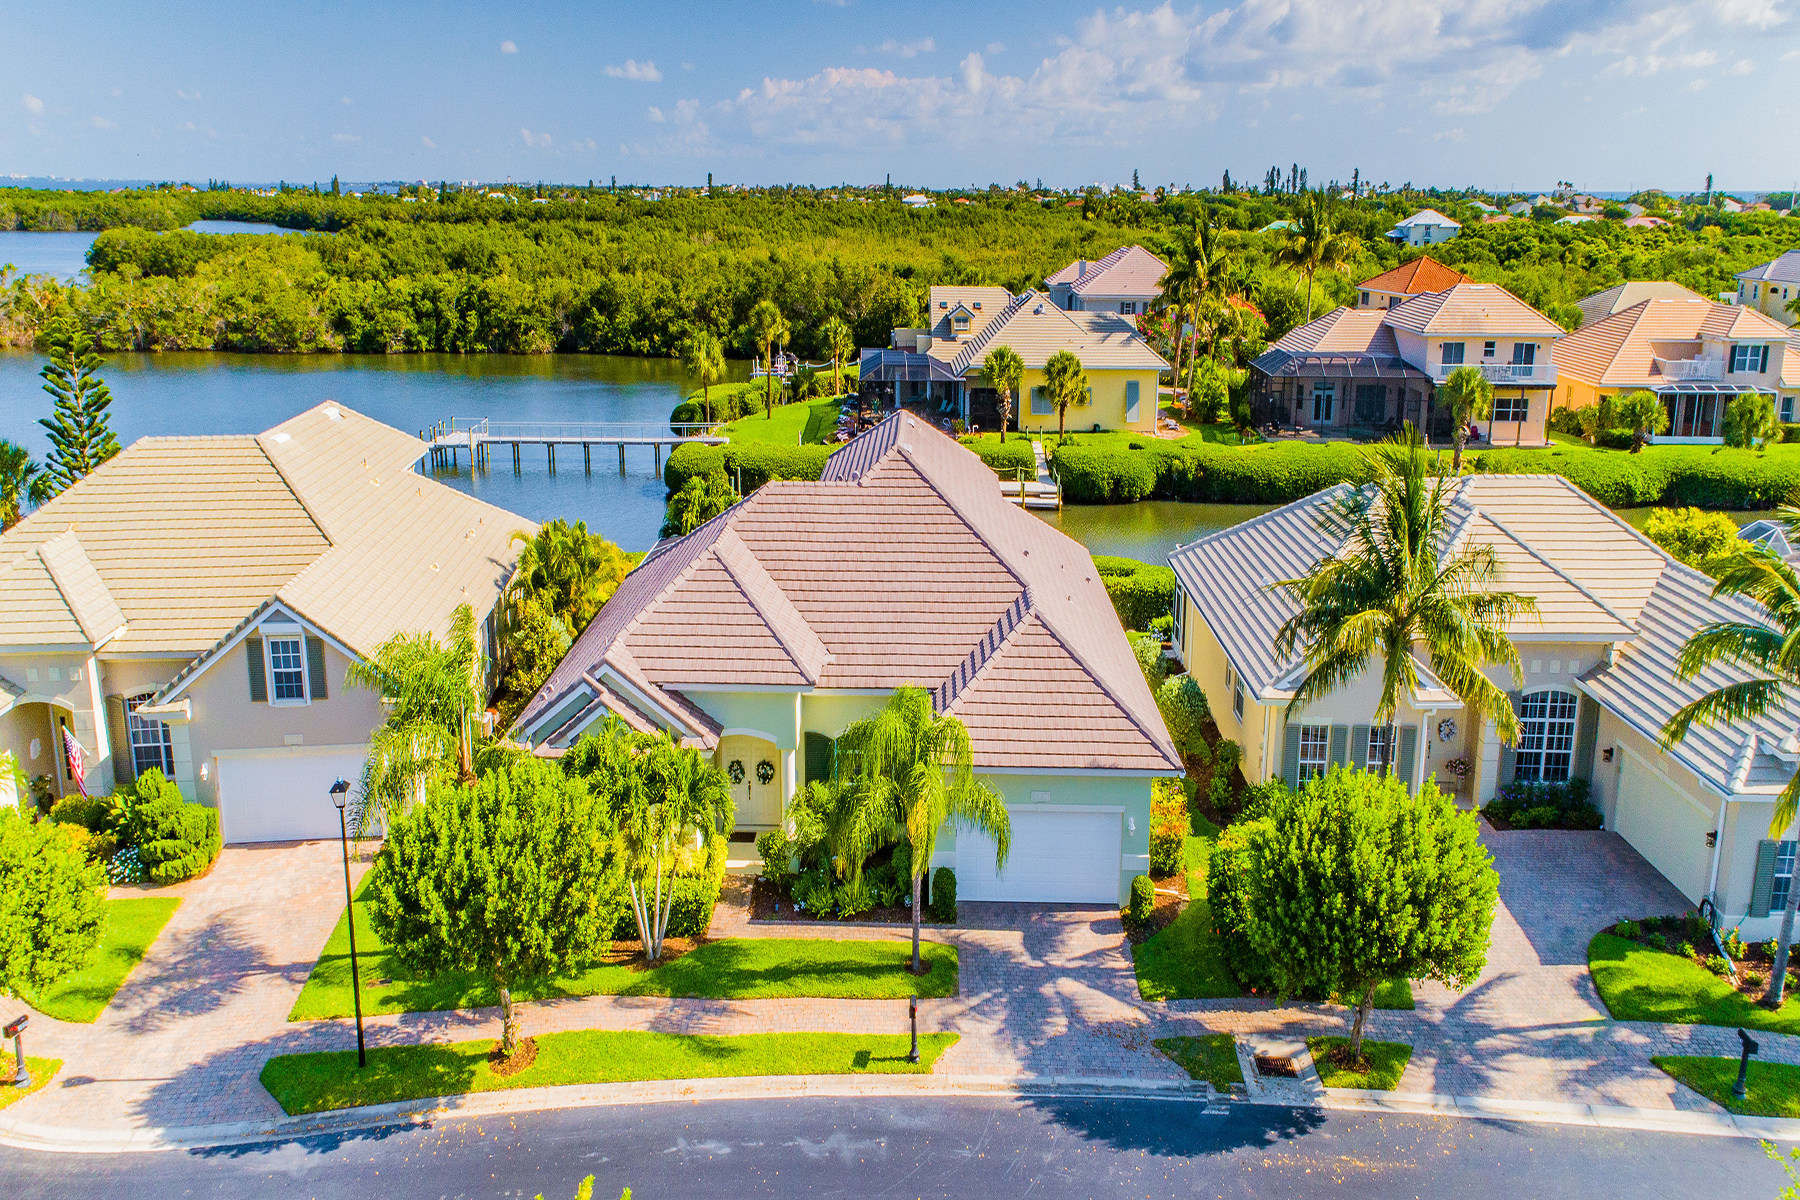 Single Family Homes for Sale at MELBOURNE BEACH 5237 Solway Dr Melbourne Beach, Florida 32951 United States